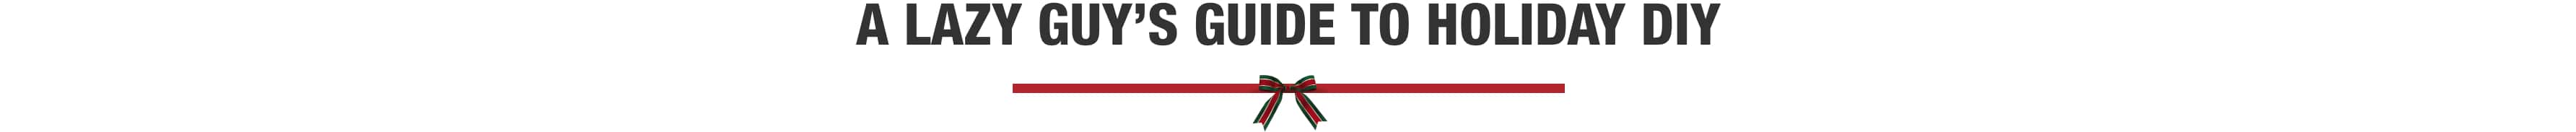 a lazy guy's guide to holiday diy